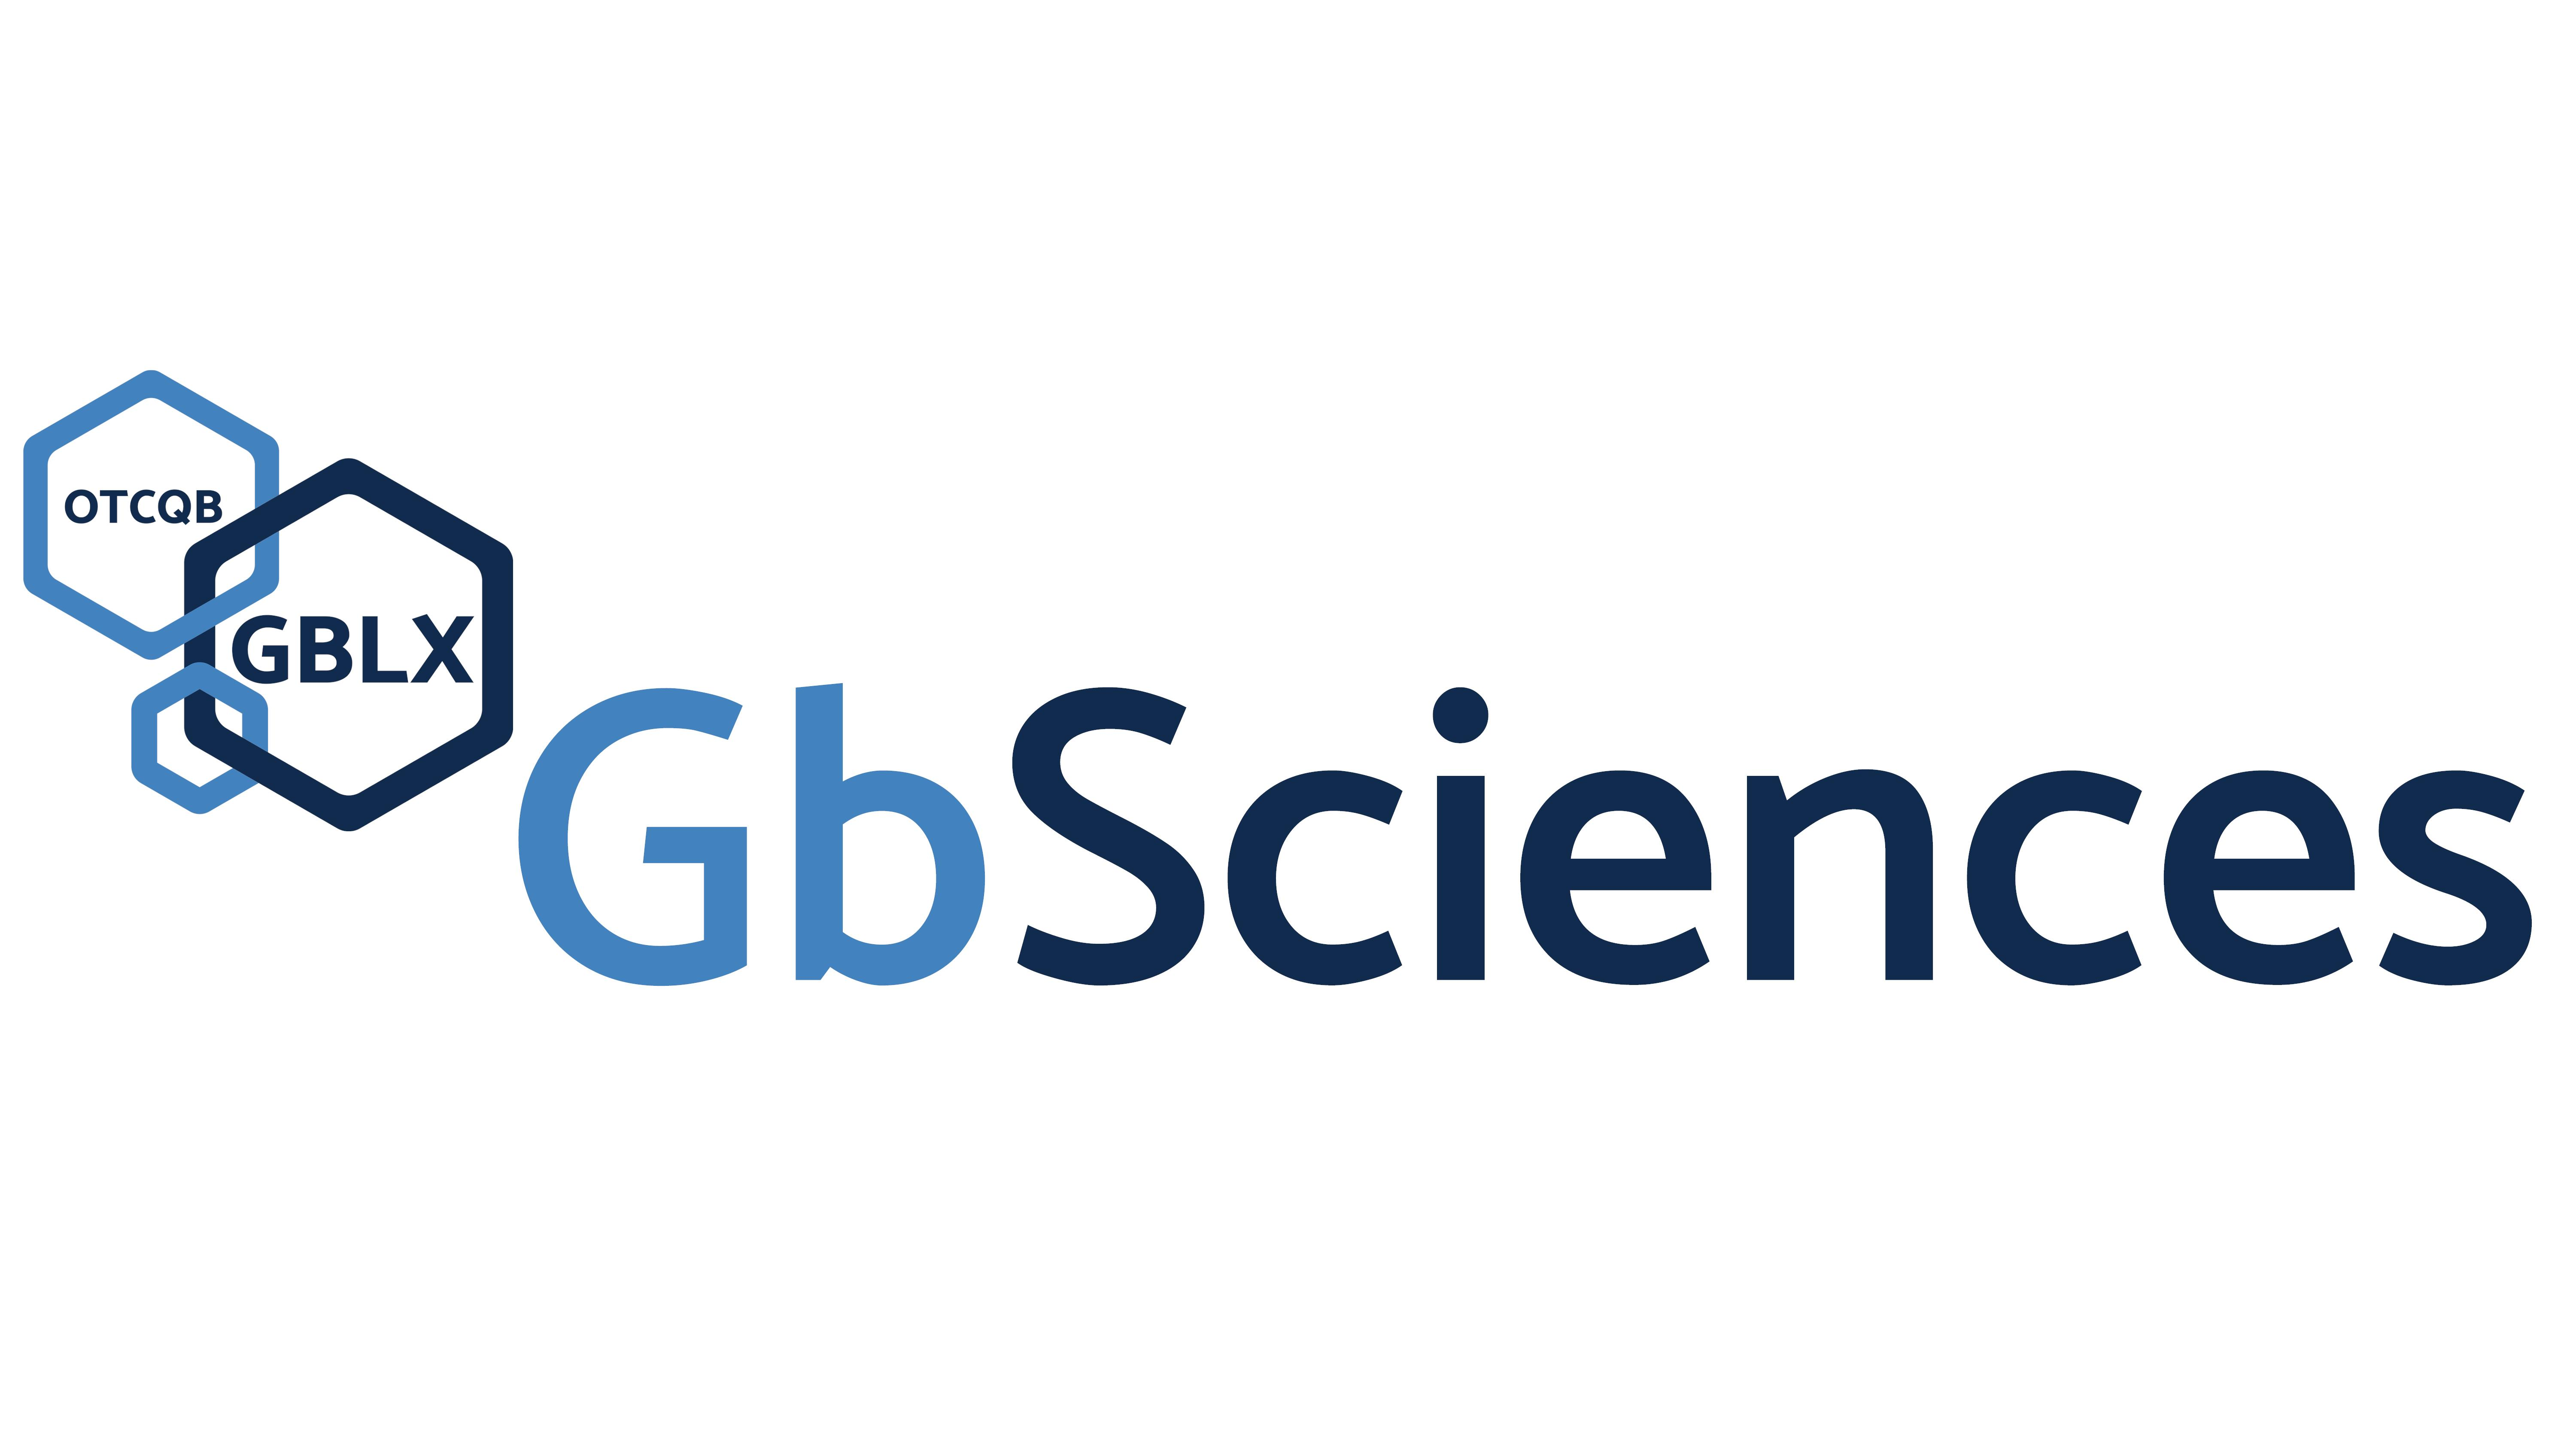 GB Sciences' Board of Directors Has Passed a Unanimous Written Consent Promoting Dr. Andrea Small-Howard to the Role of President